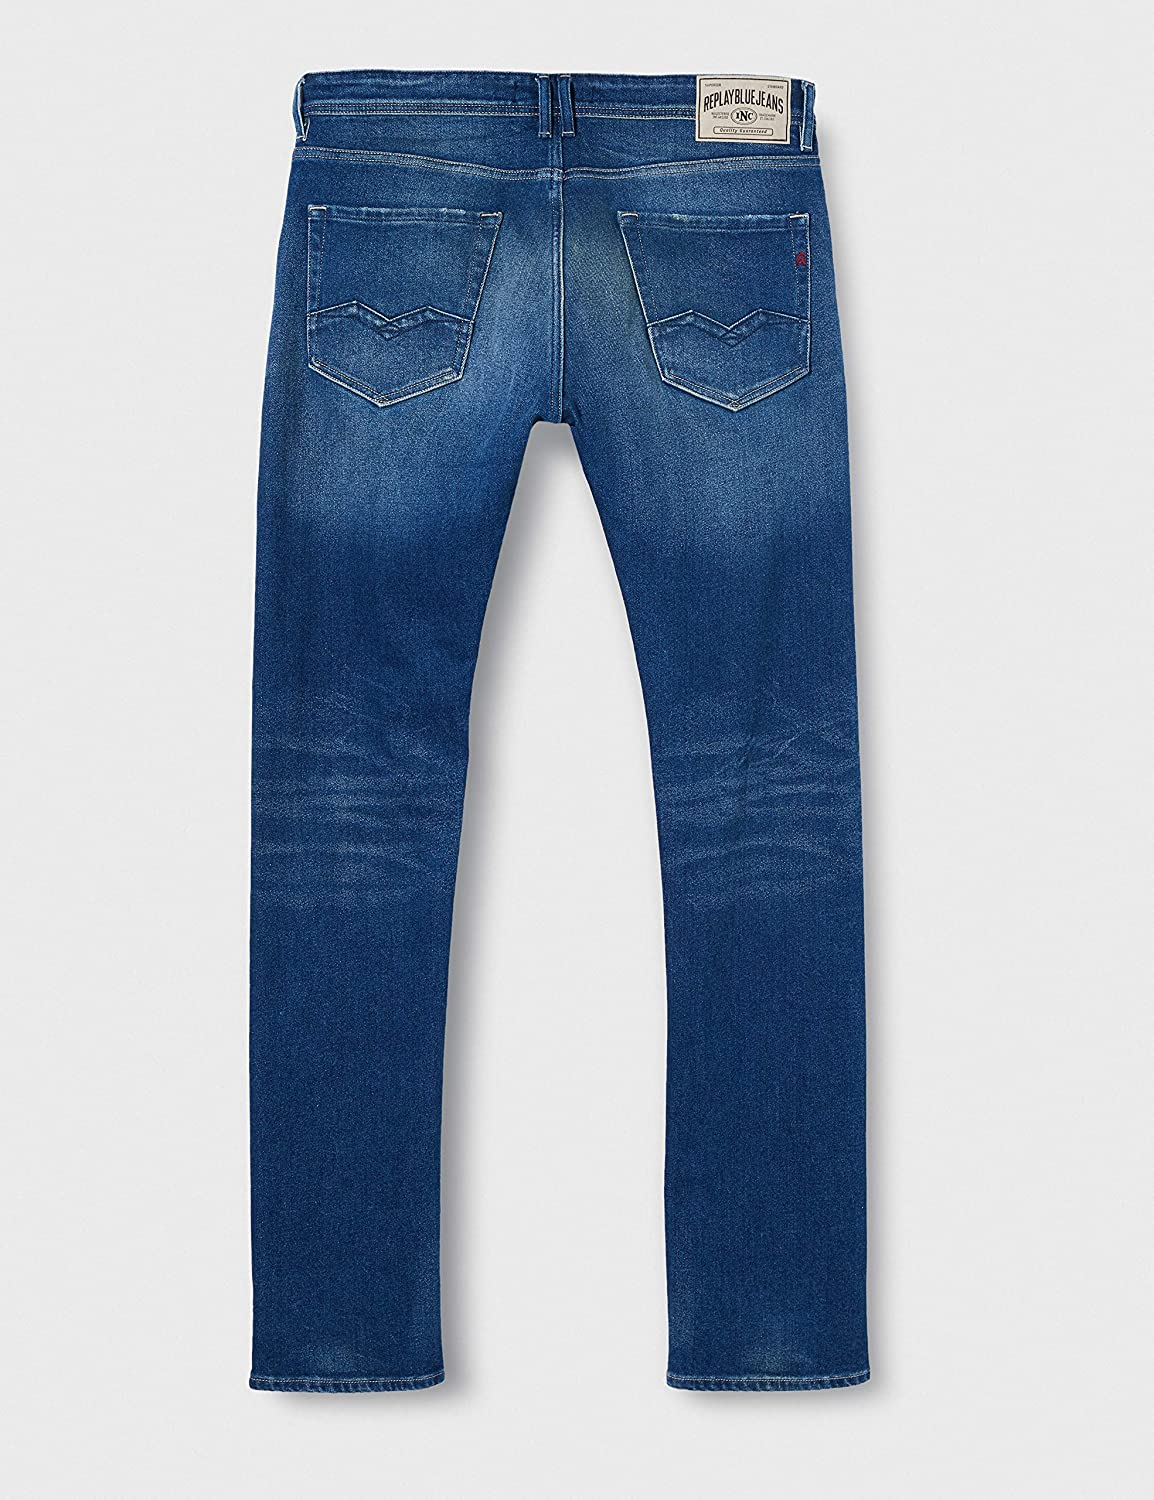 Replay Men's Rocco Tapered Fit Jeans Blue (Medium Blue 9)